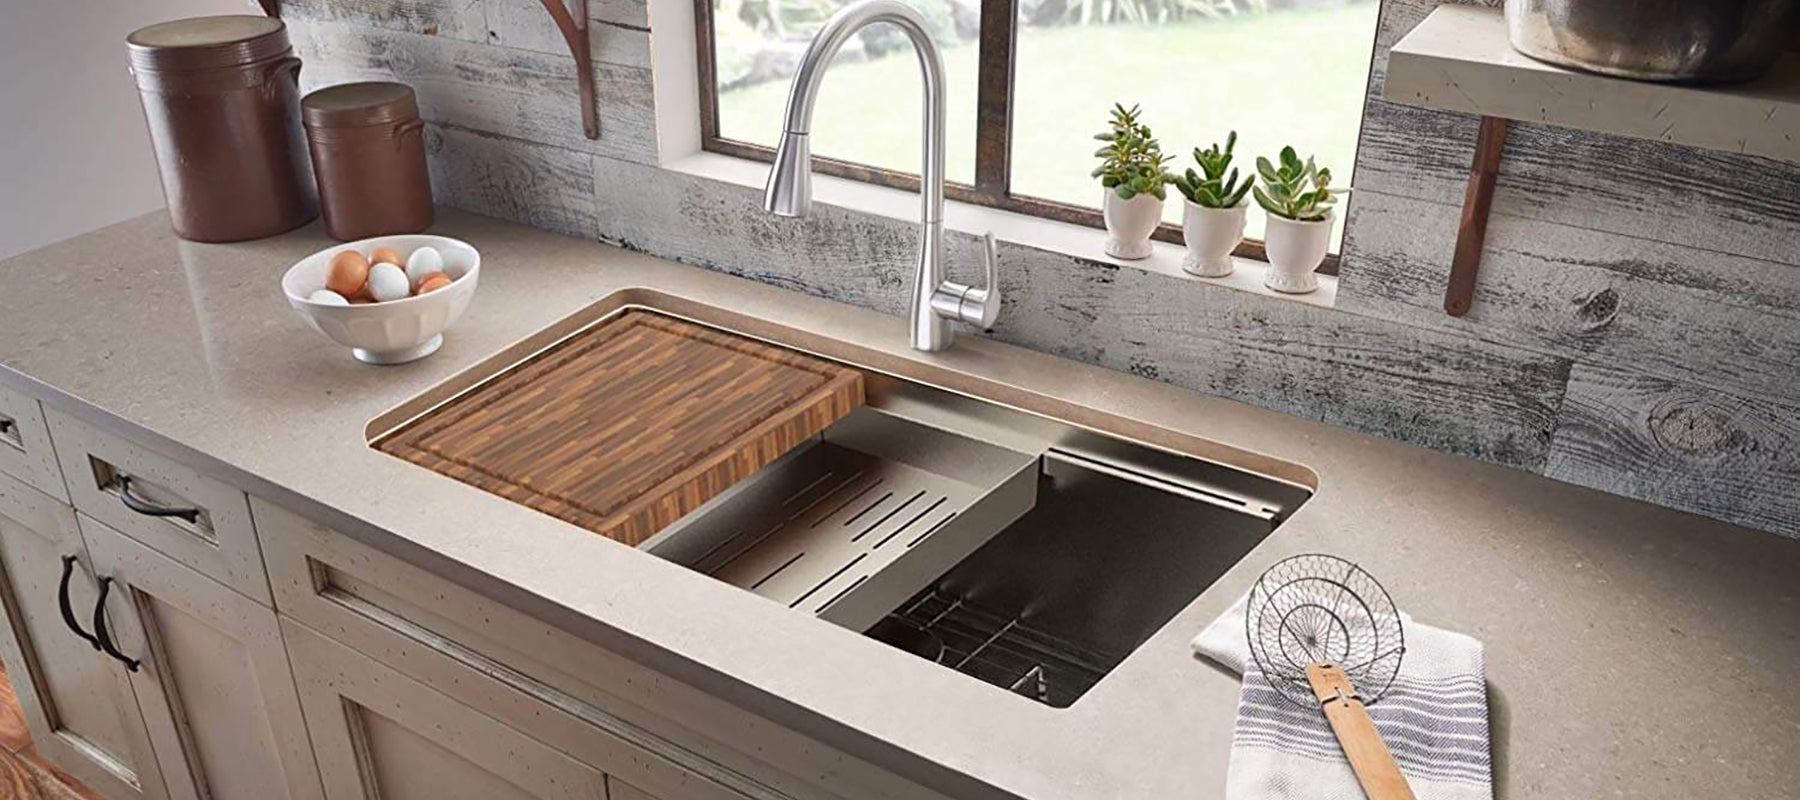 How To Clean Rust From The Undermount Kitchen Sink